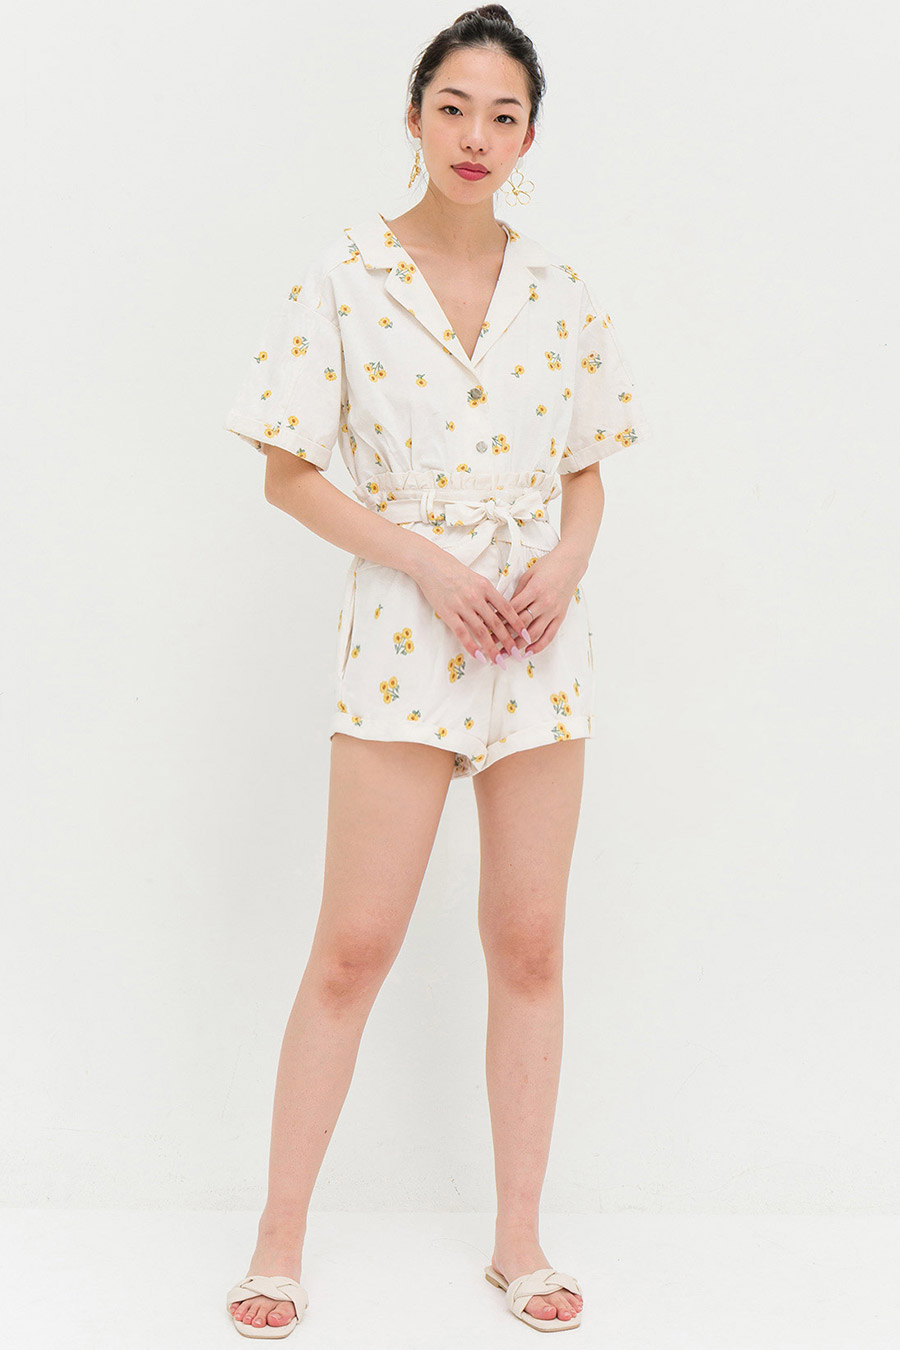 POLIVIA PLAYSUIT - SUNFLOWER